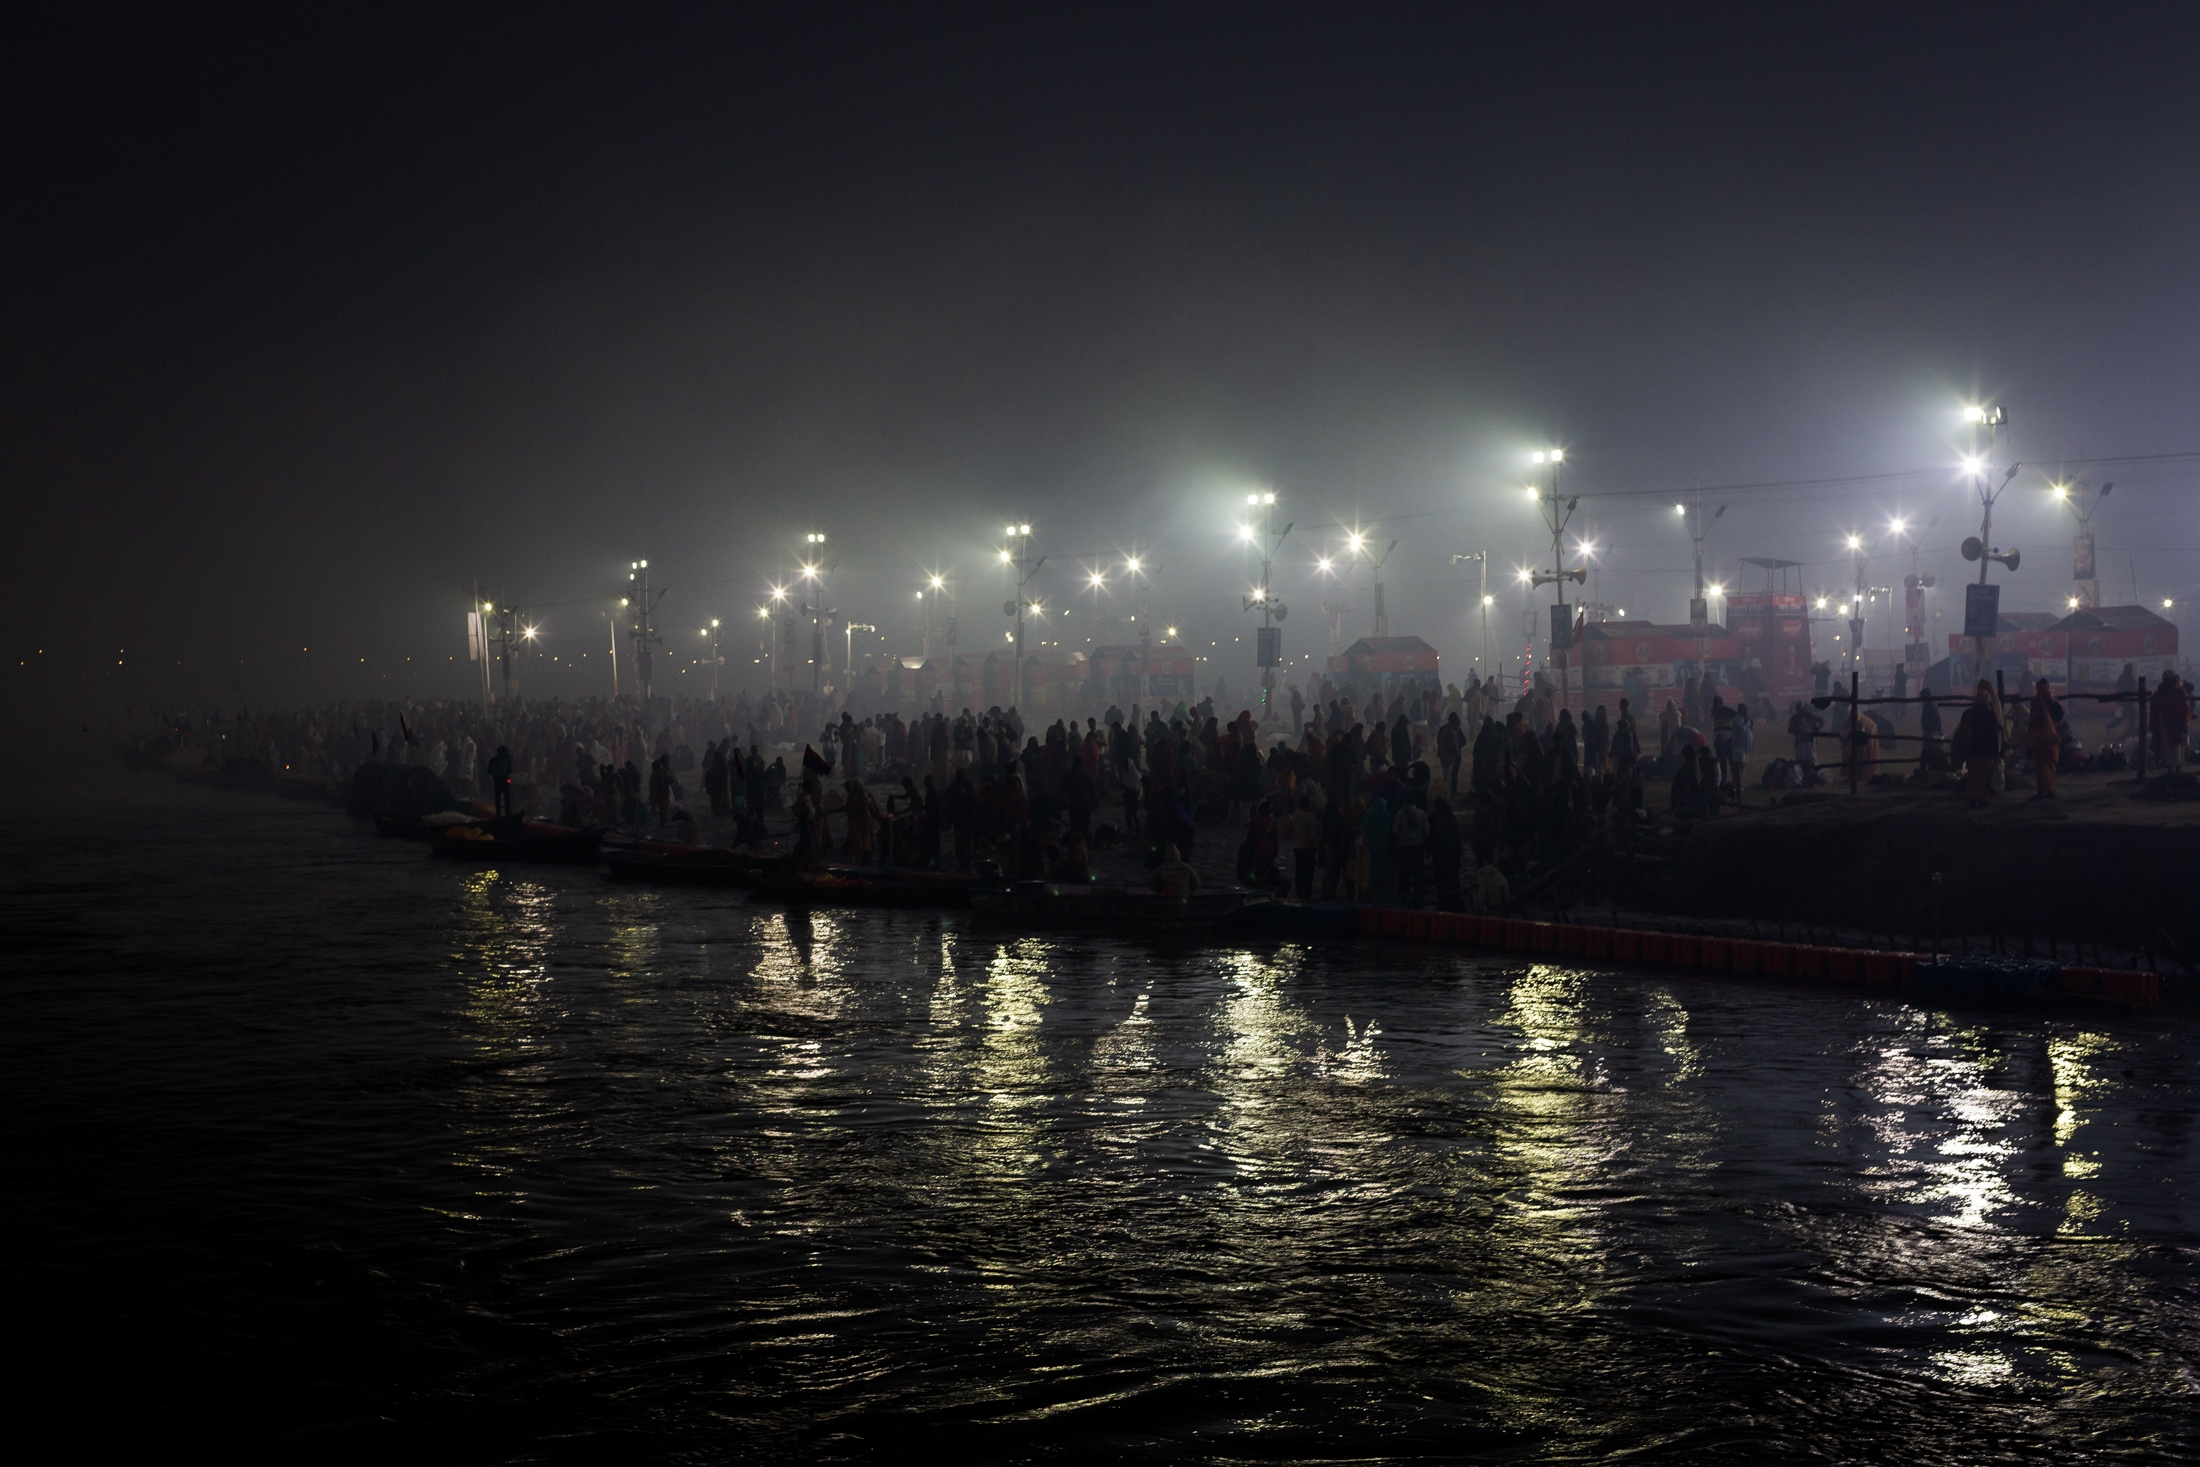 View of Triveni Sangam where pilgrims gather during the night for the holy bath not only to expiates sins but also to free one from the cycle of birth and death, Prayagraj, February 2019.